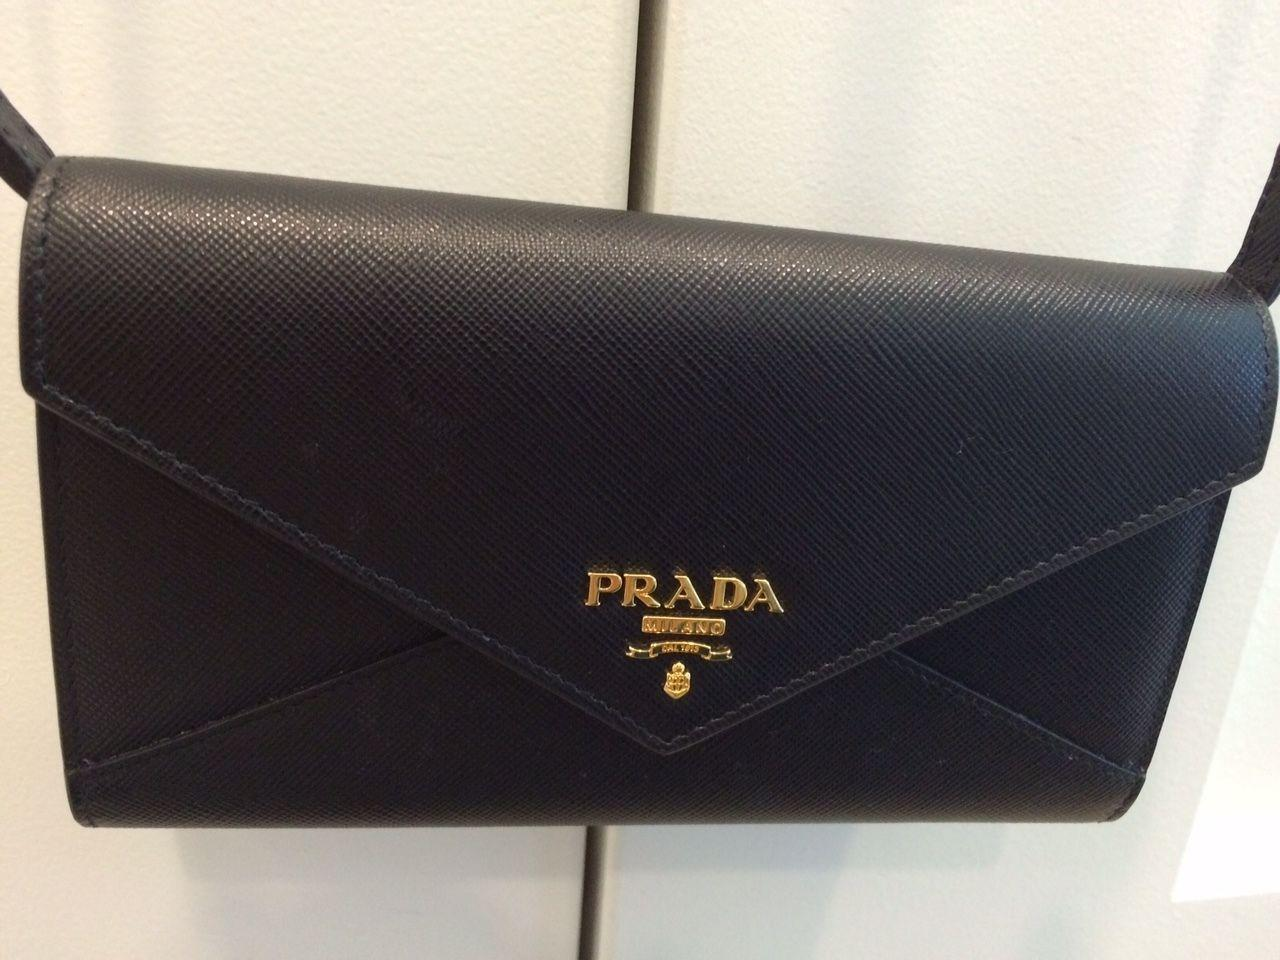 3be5afc0f9f2 ... coupon code prada wallet on strap black saffiano leather cross body bag  tradesy f8450 8895a